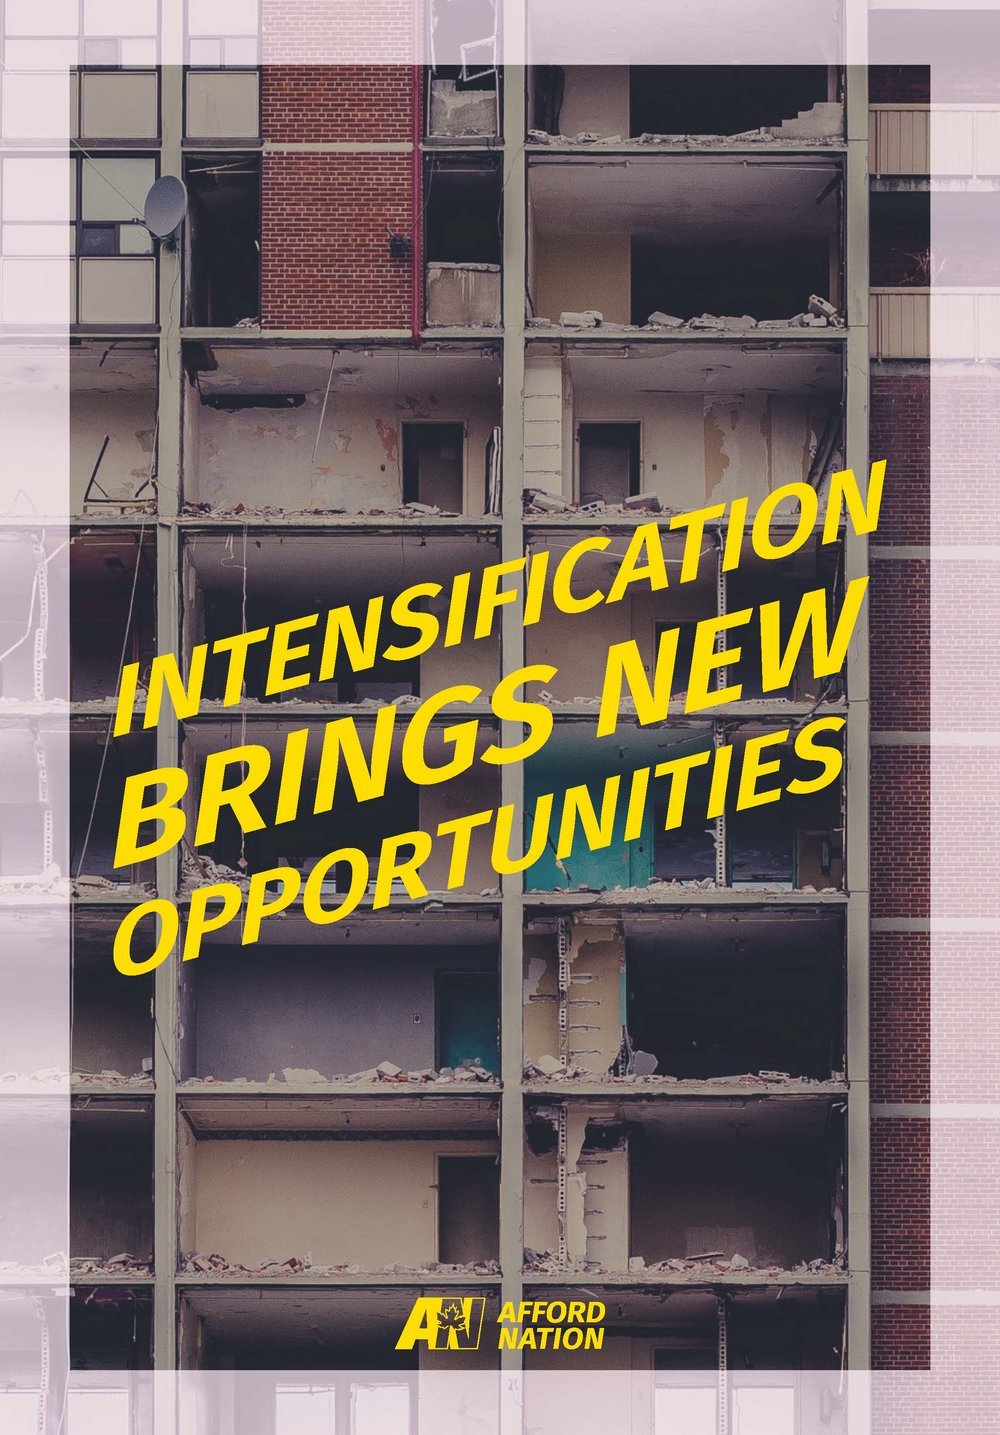 Intensification brings new opportunities